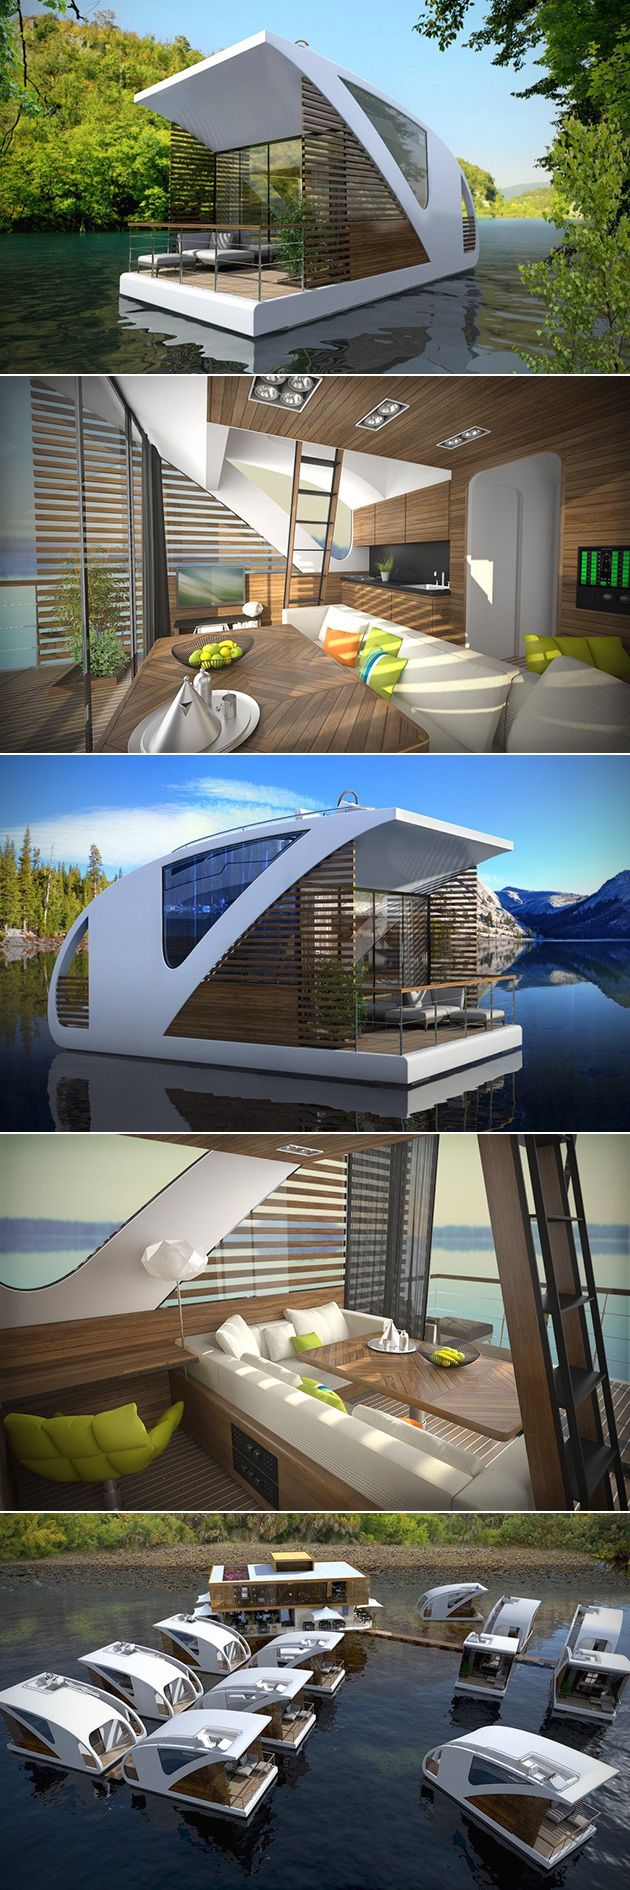 This new Floating Hotel with Catamaran Apartments aims at promoting low-impact tourism on inland waters. Consisting of small, floating catamarans, the floating hotel is a perfect solution for tourism without harming the natural environment.